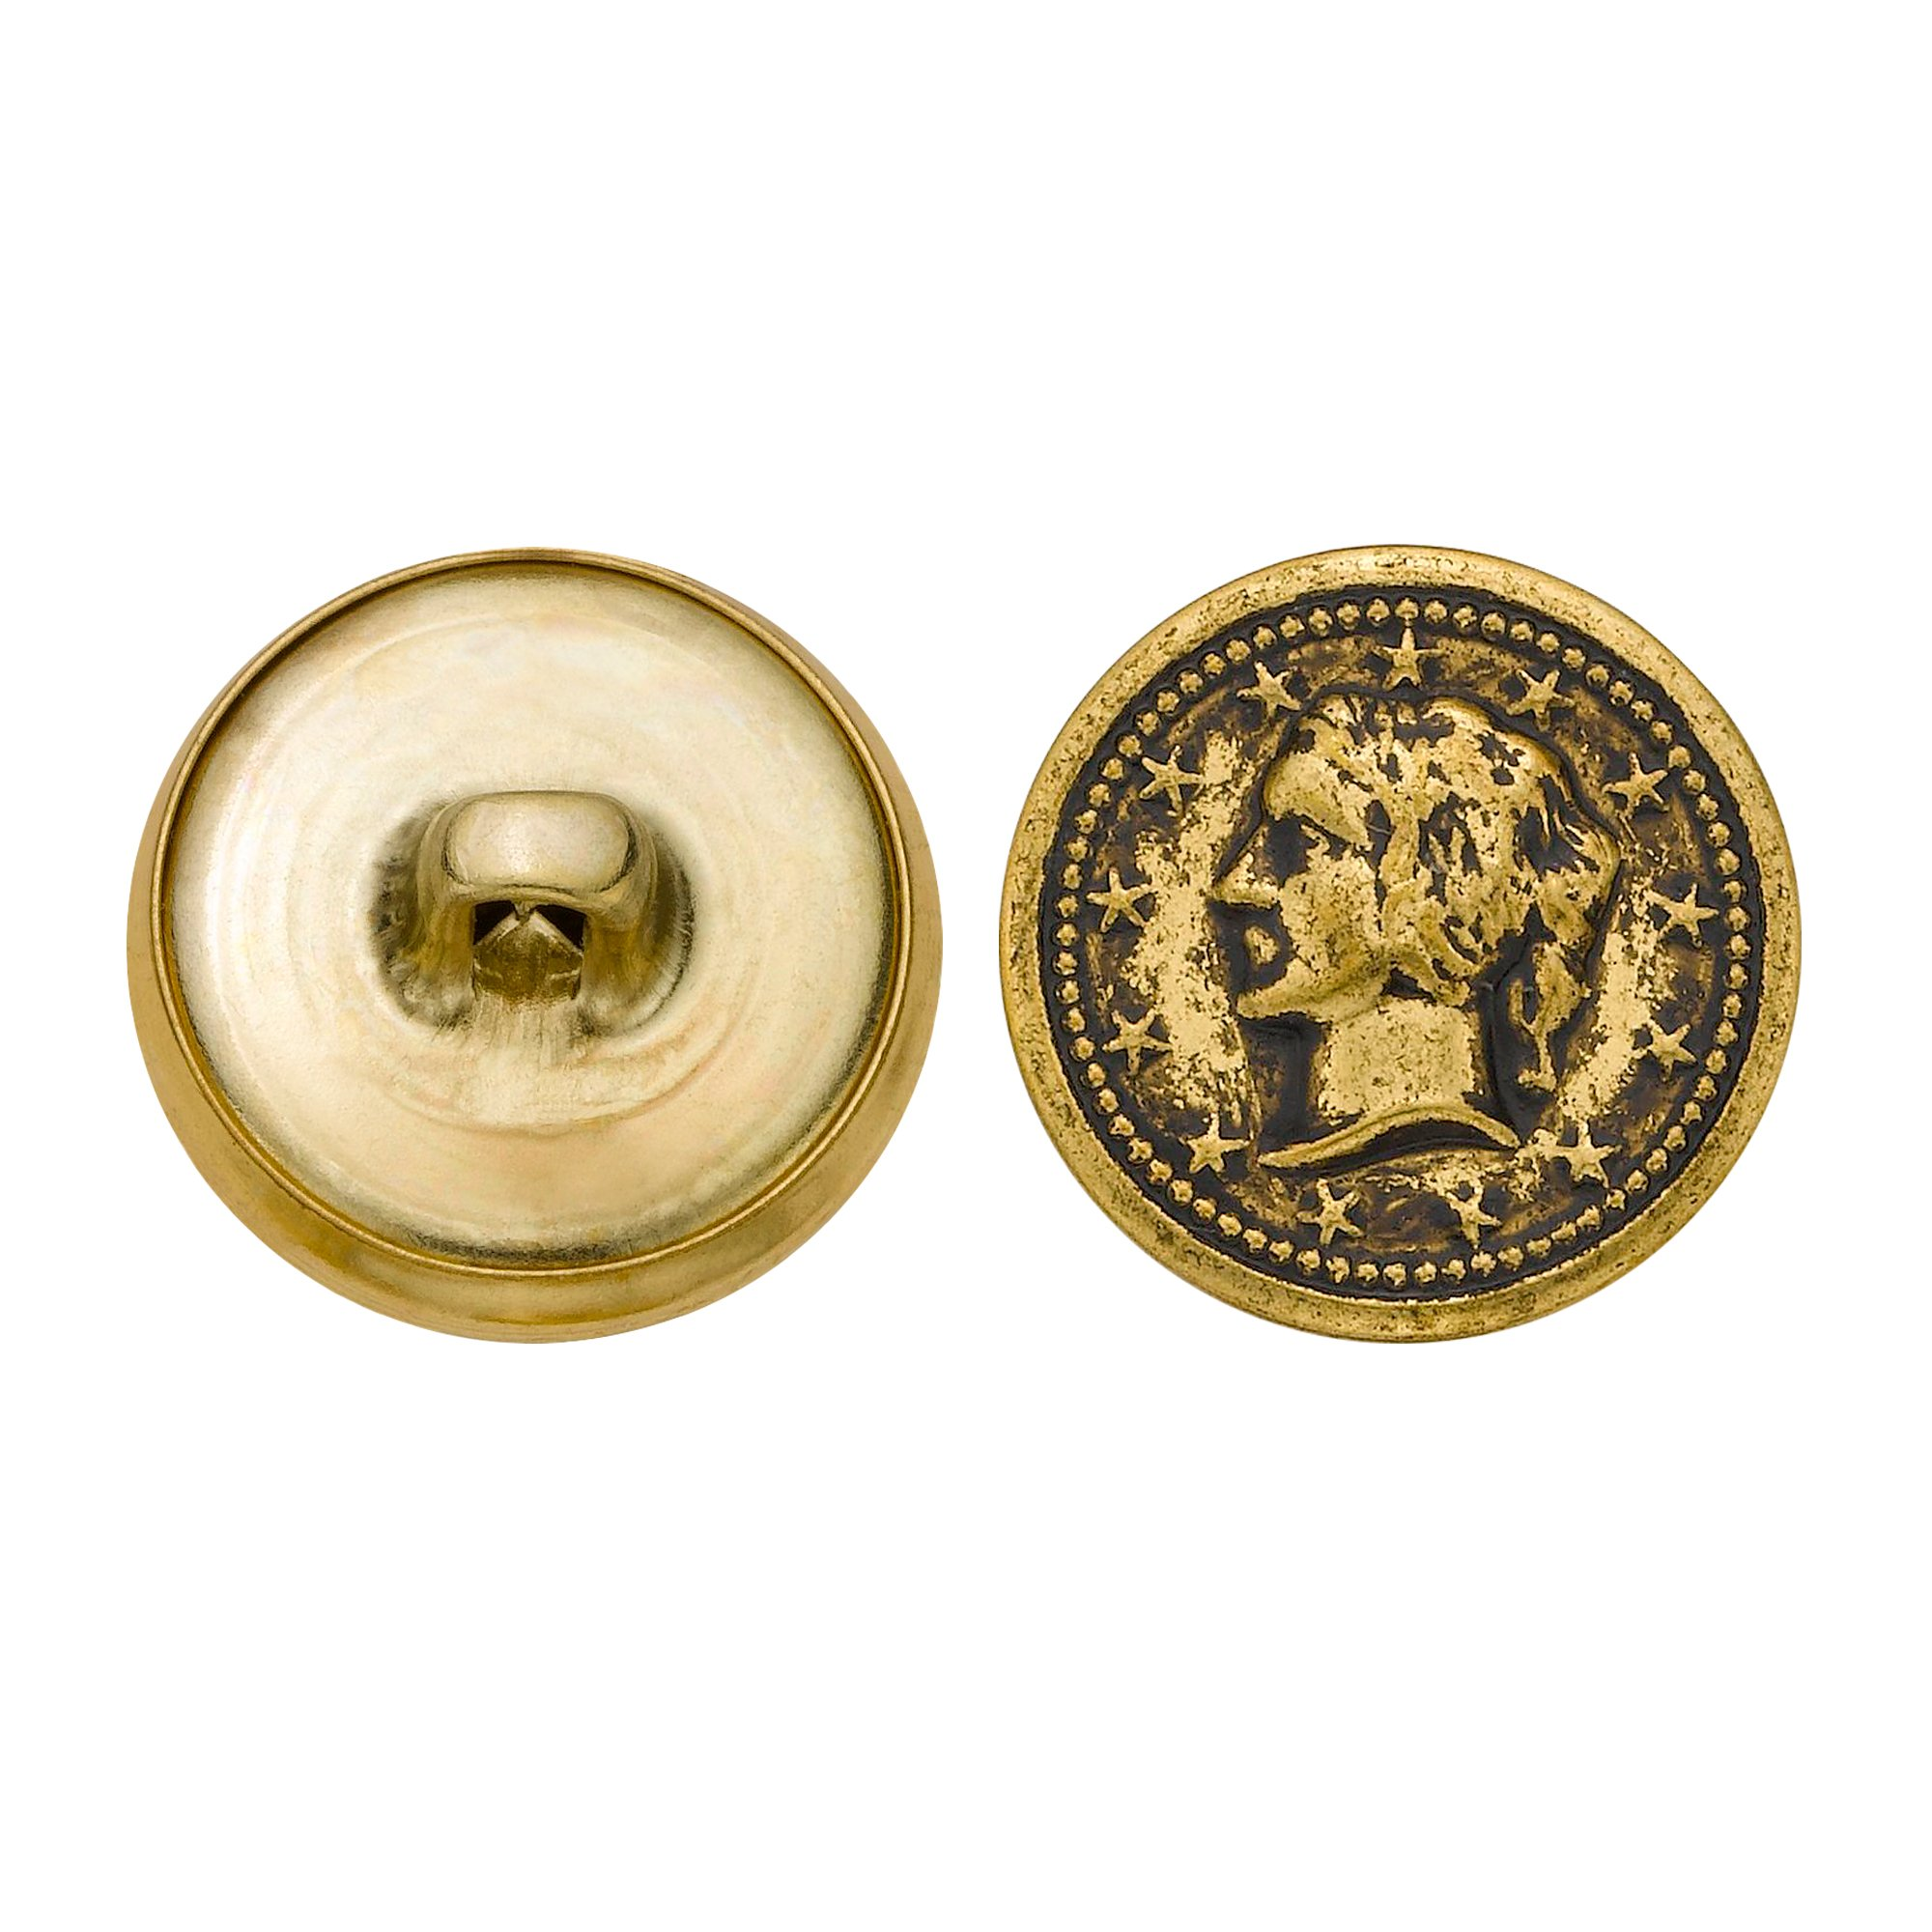 C&C Metal Products 5328 Lady Head Coin Metal Button, Size 30 Ligne, Antique Gold, 36-Pack